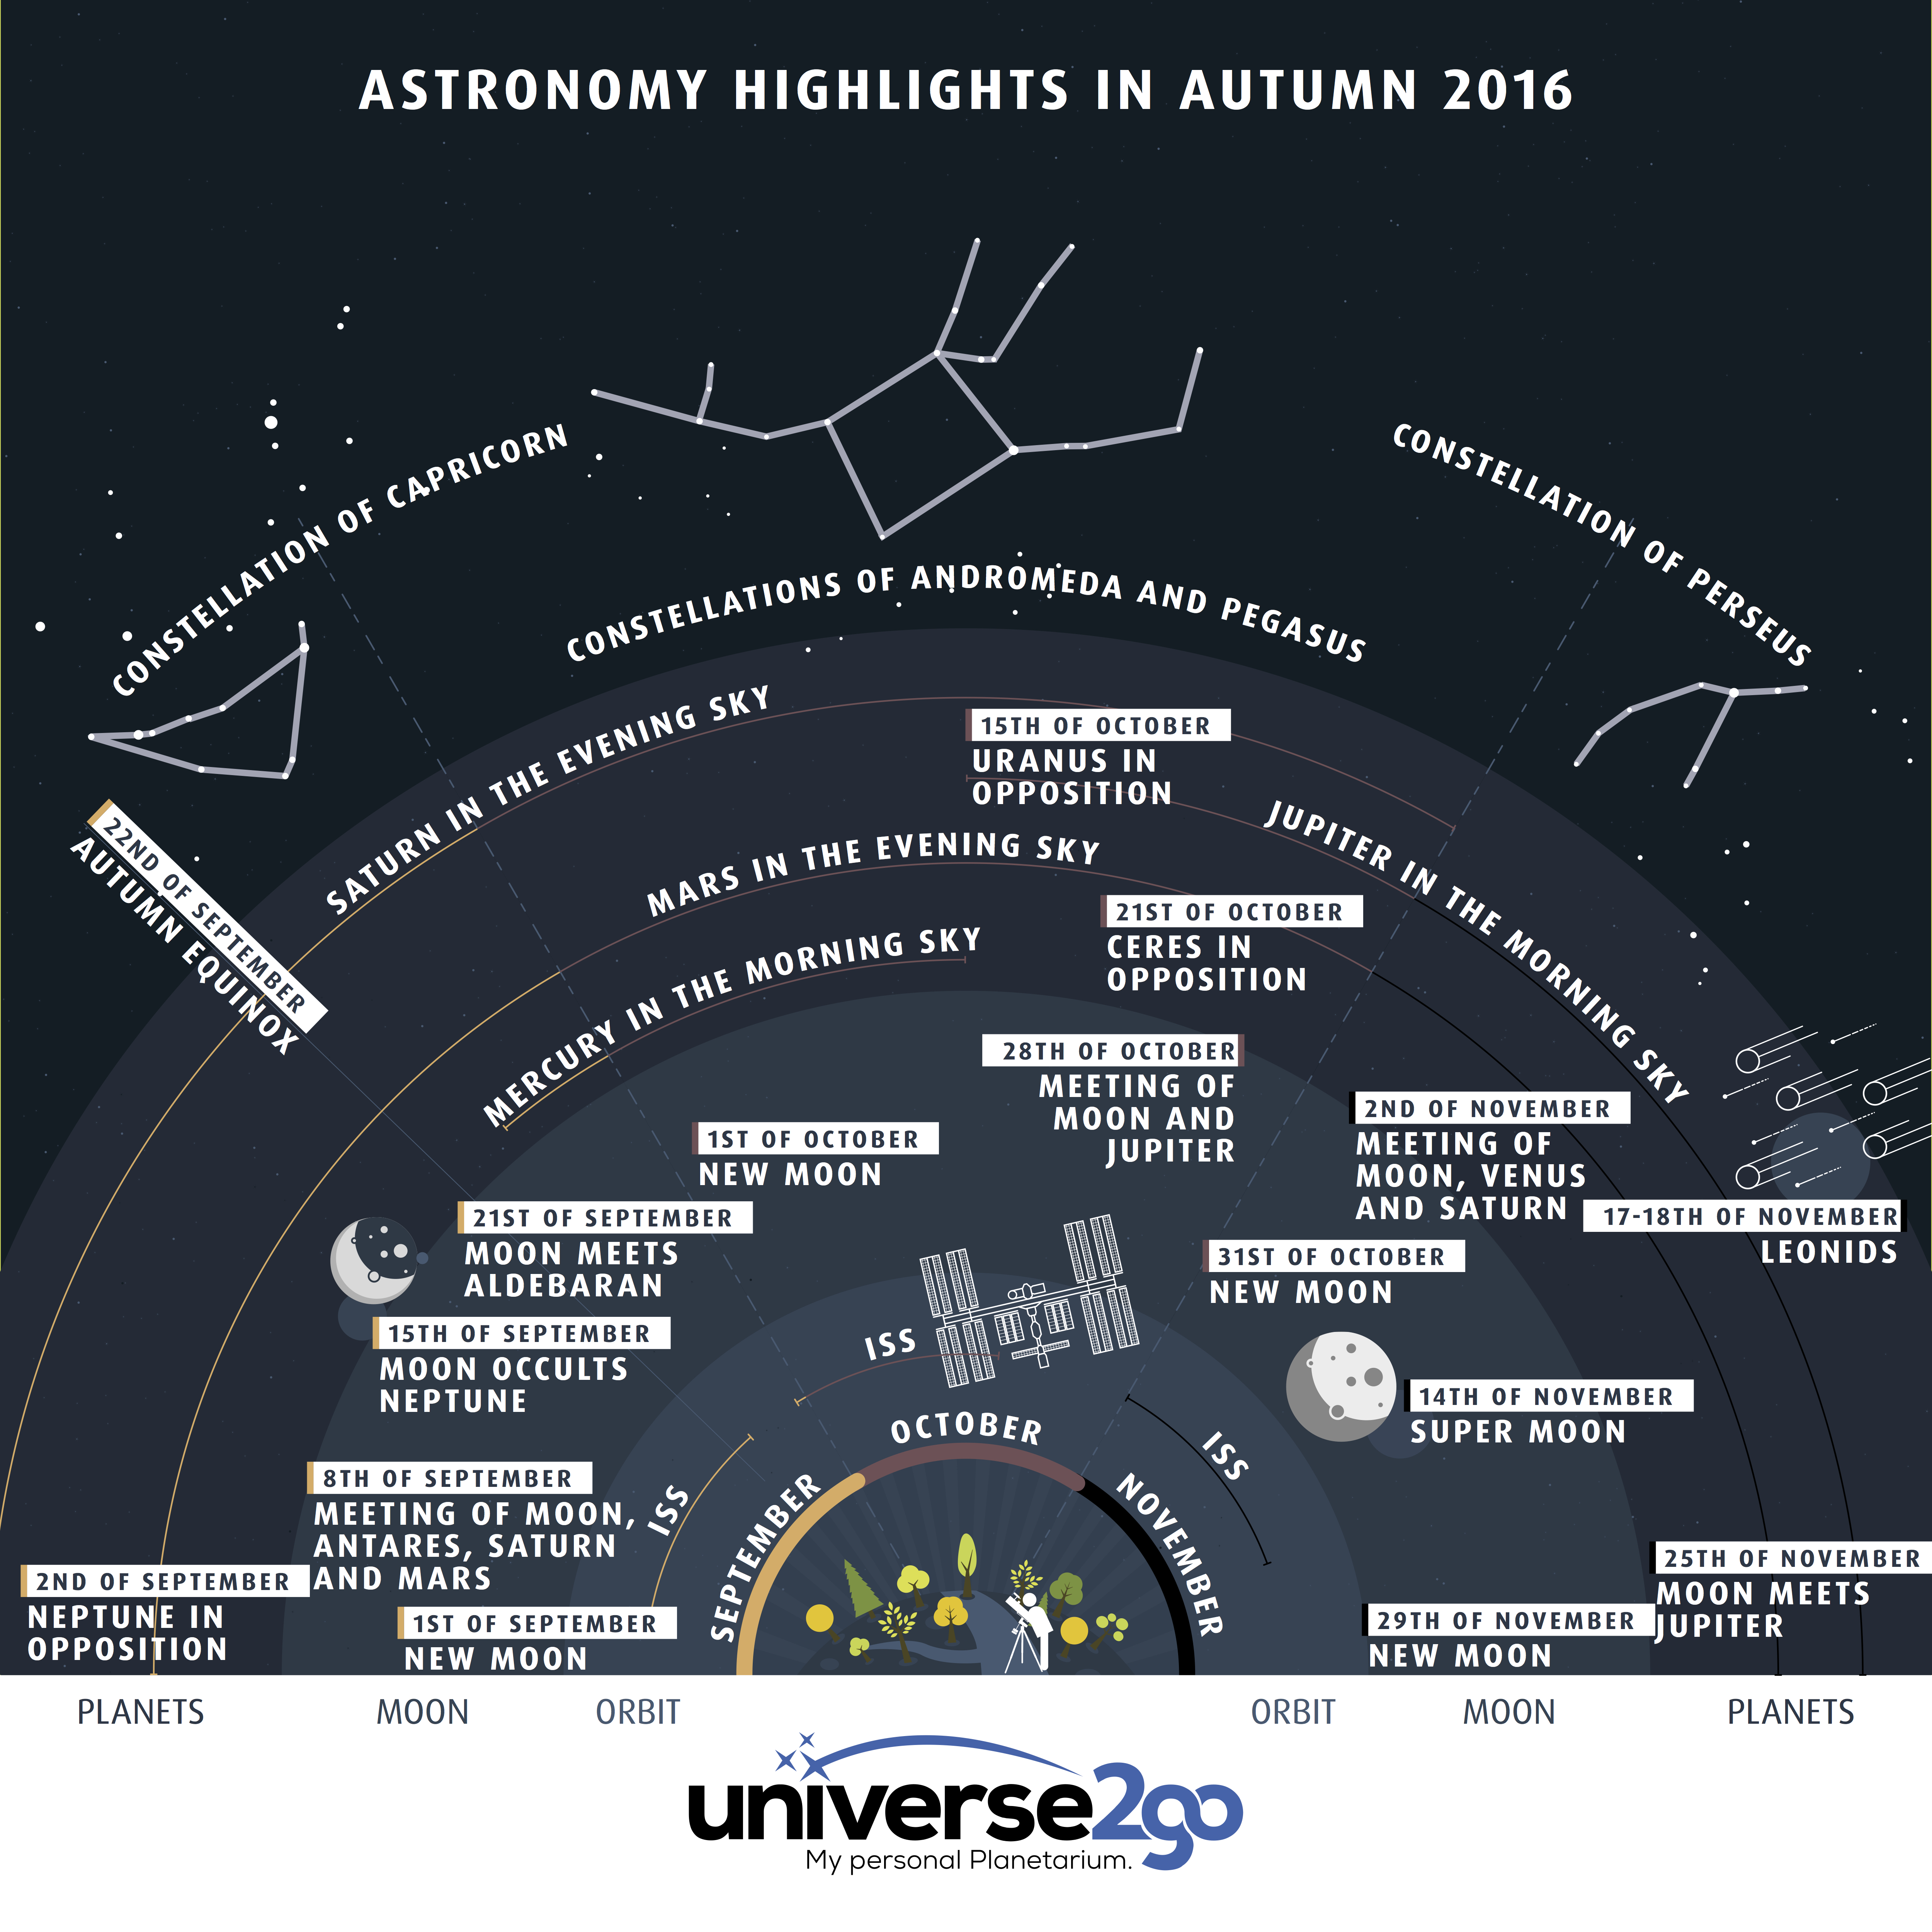 Infographic Highlights fall autumn 2016: All Info at a glance, when to see the moon, planets, leonid meteor shower, and constellations